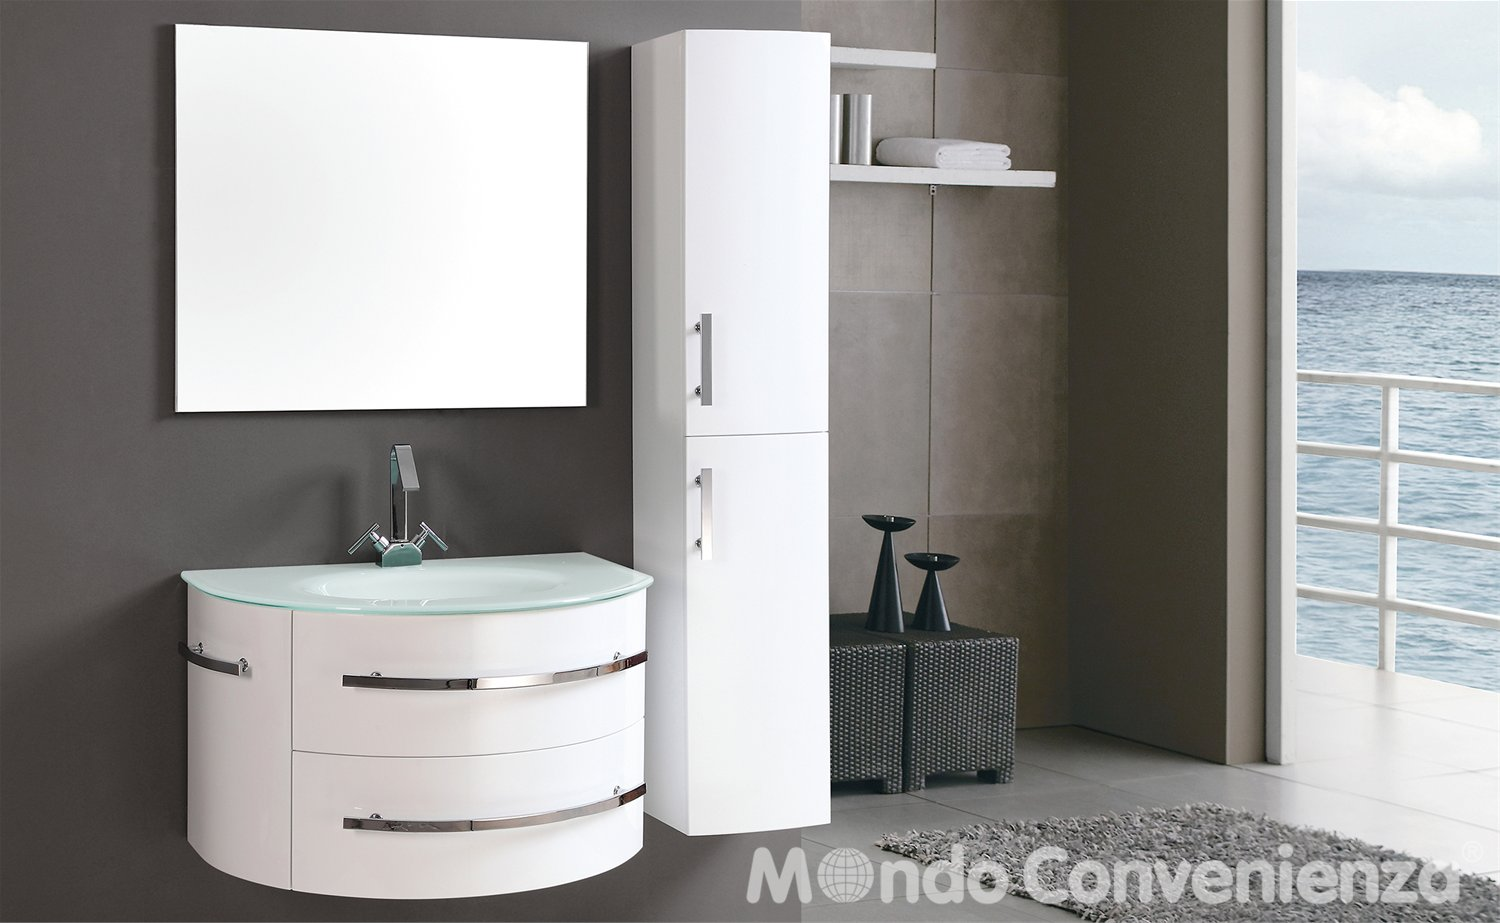 Catalogo mondo convenienza 2013 18 design mon amour for Mobili per bagno mondo convenienza